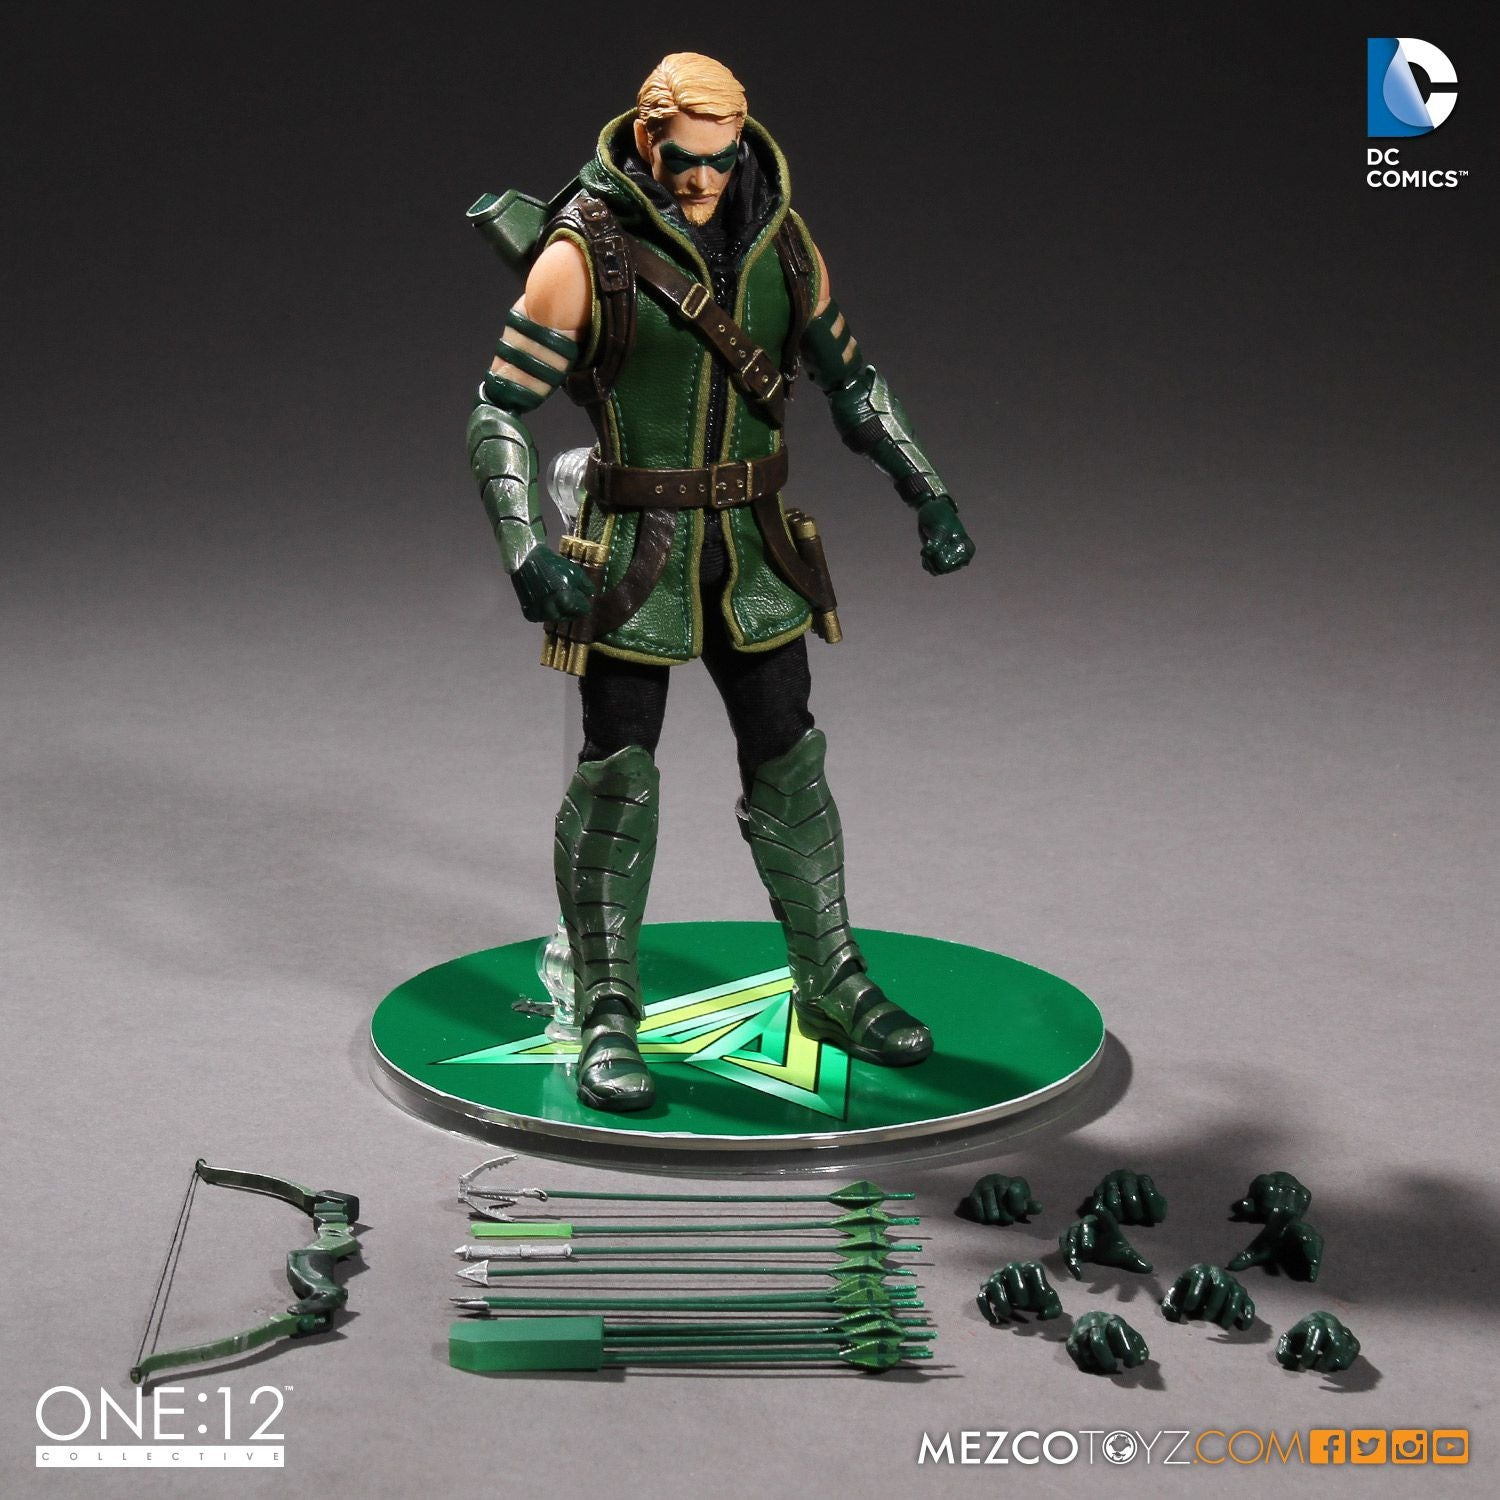 Mezco - One:12 Collective - Green Arrow - Marvelous Toys - 7